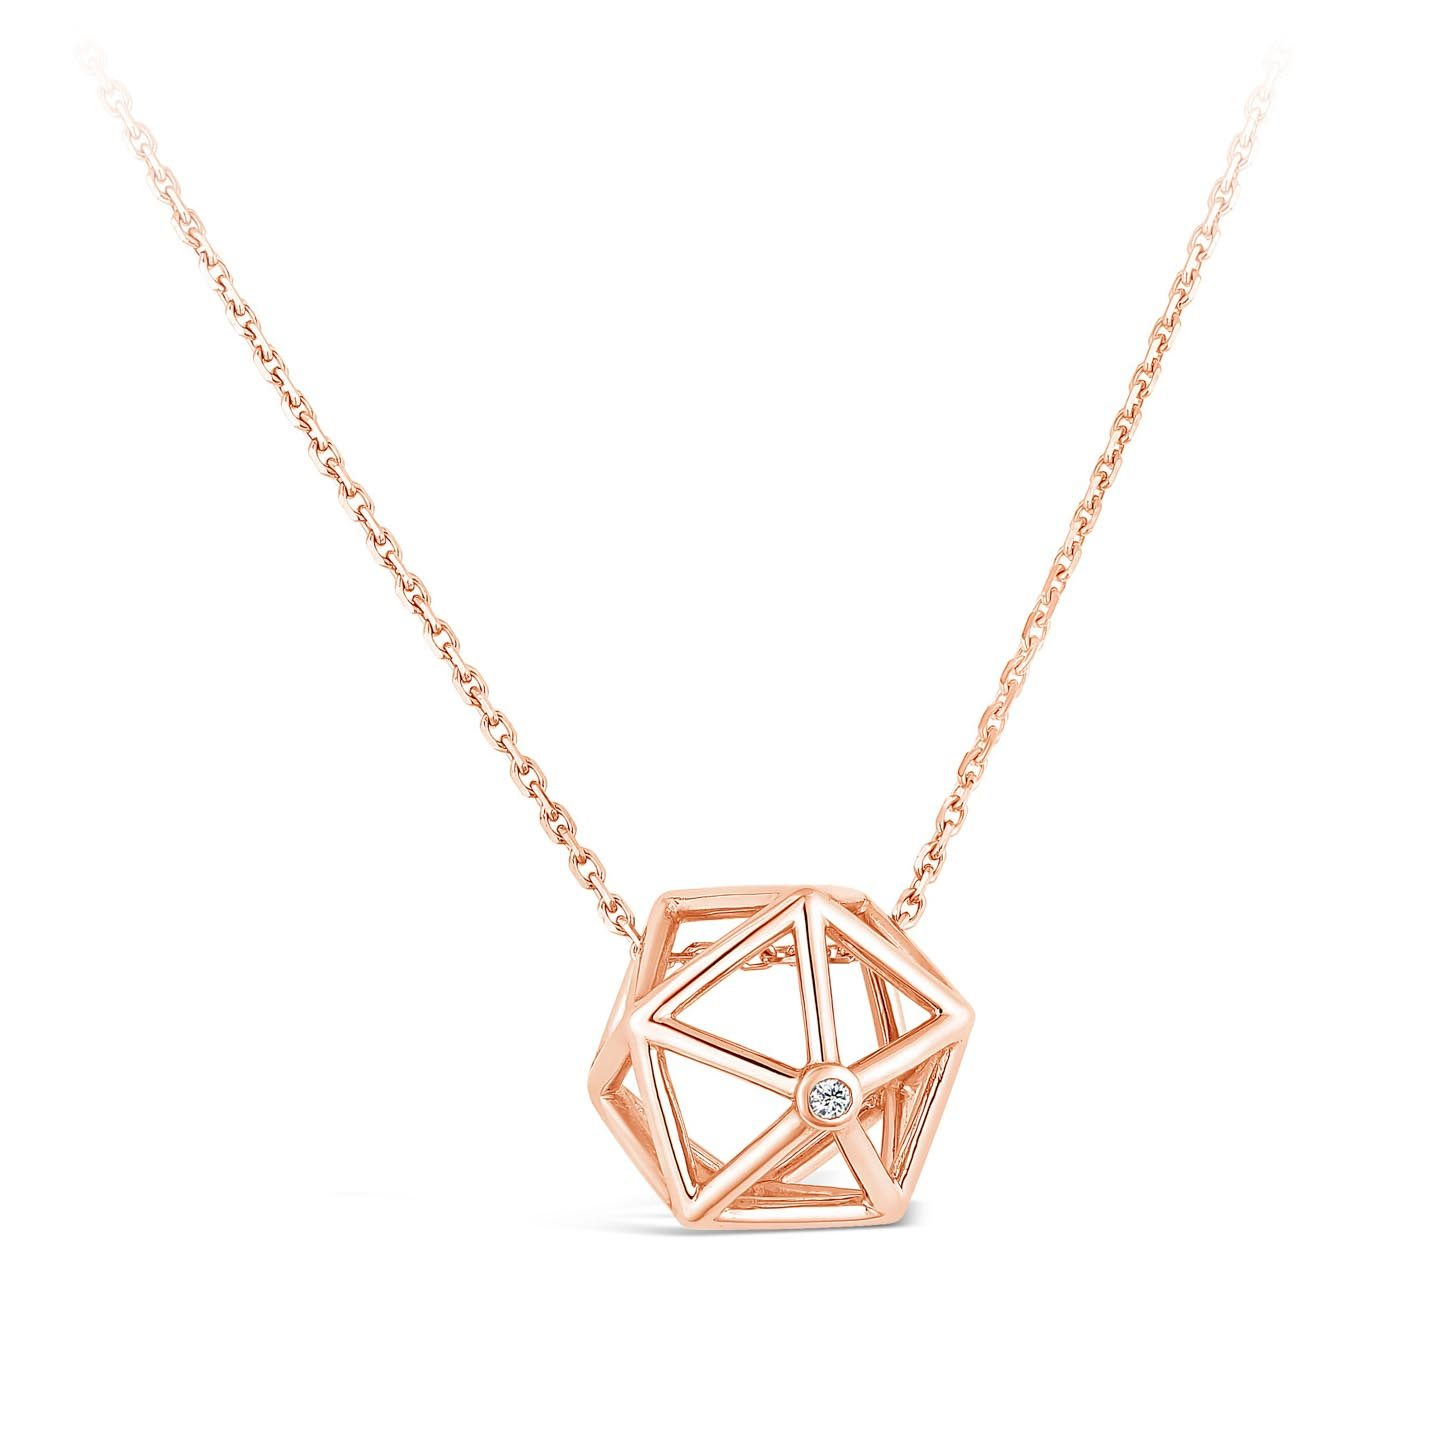 Collier icoasaère or rose